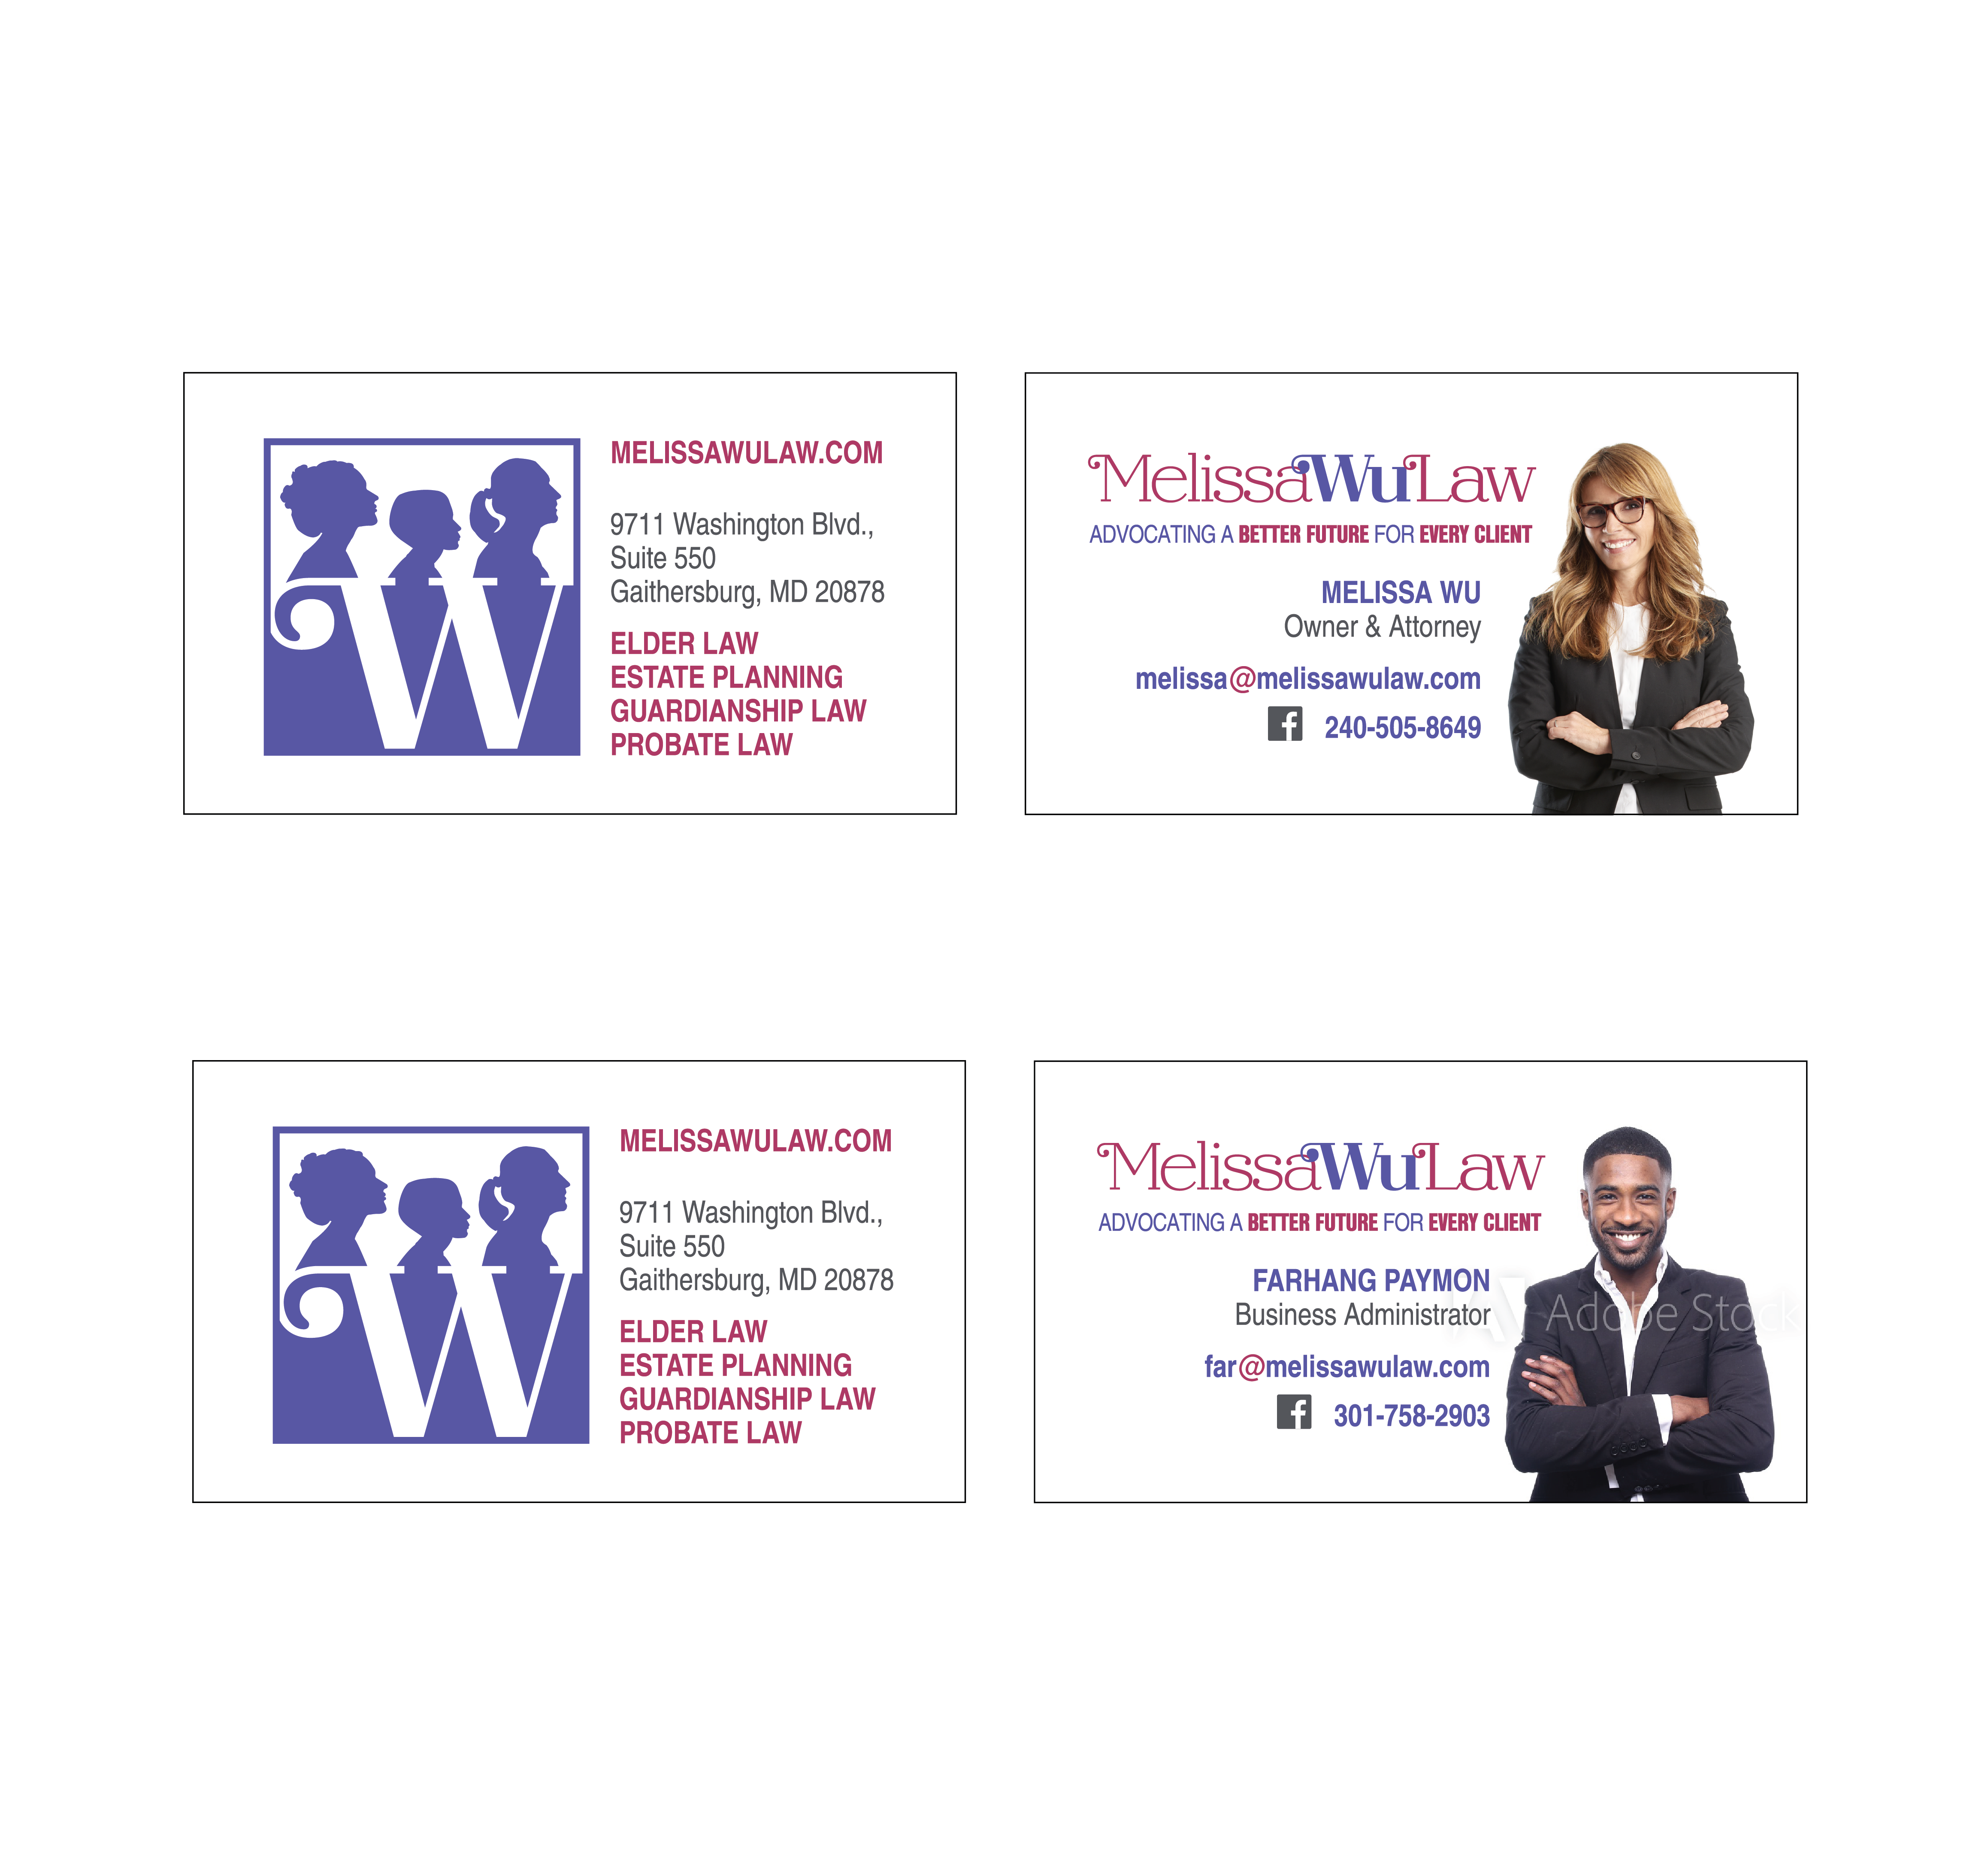 Melissa Wu Law Business Card Design Layout